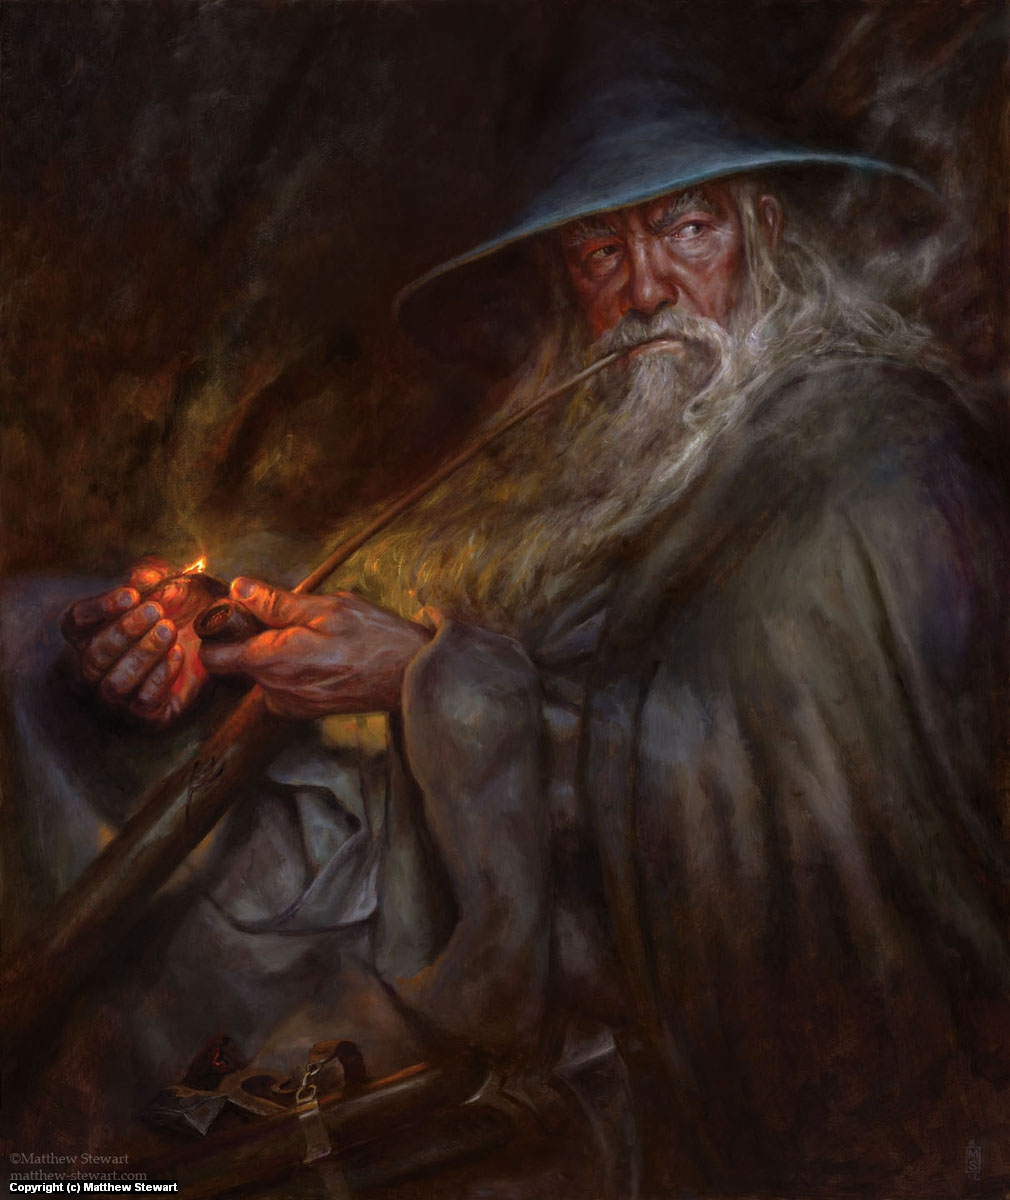 Gandalf-A Light in the Dark Artwork by Matthew Stewart